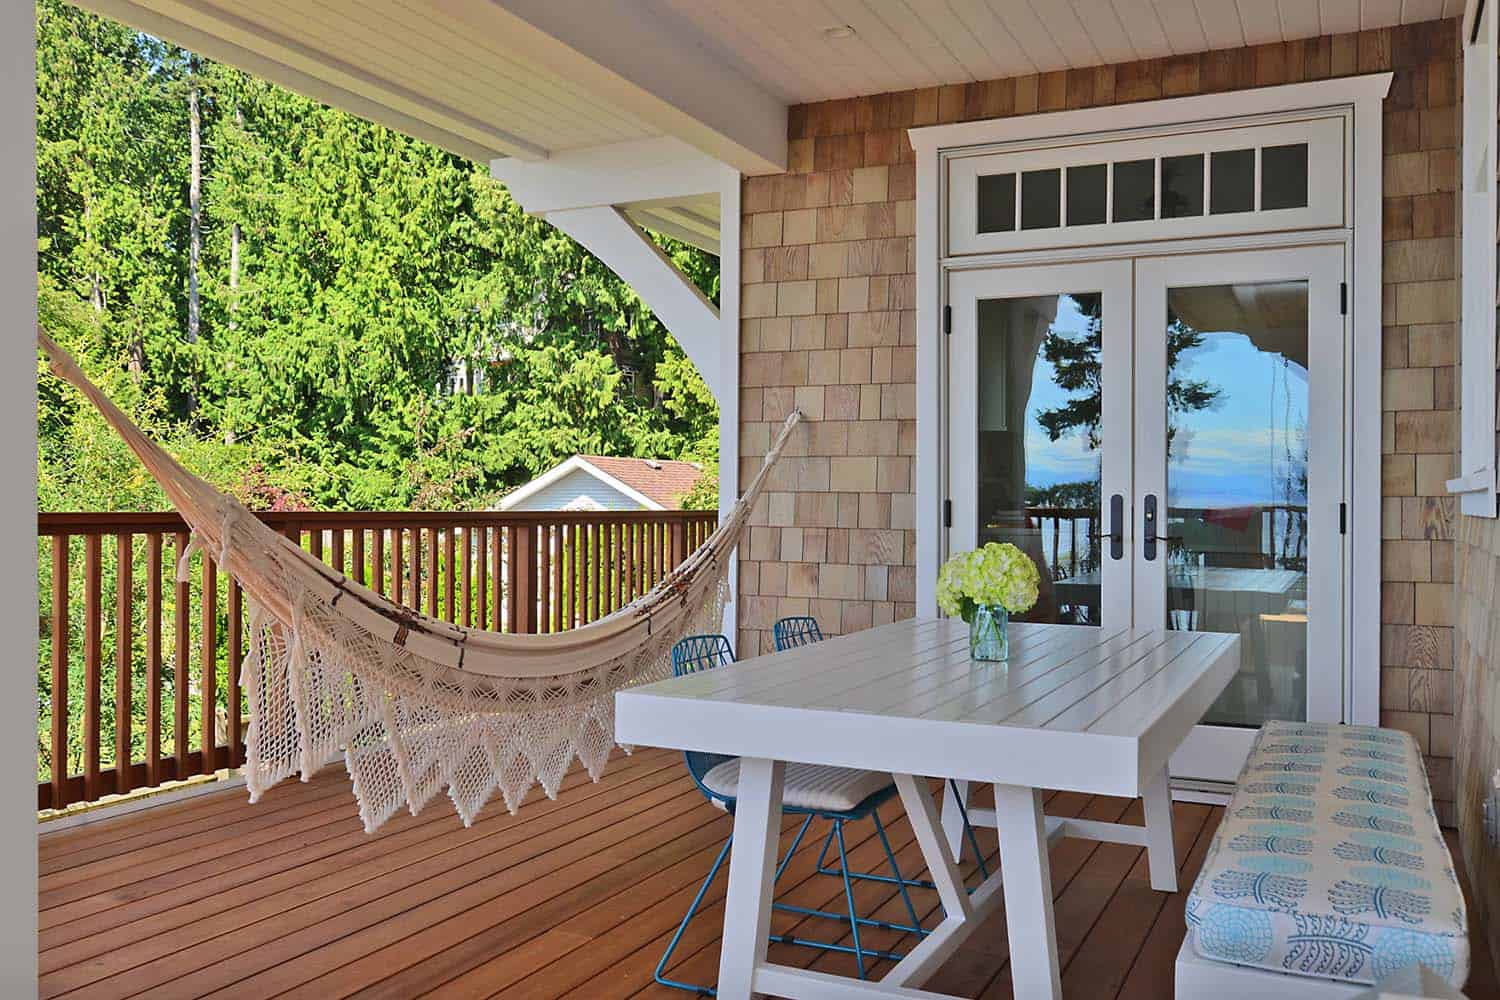 31 heavenly outdoor hammock ideas making the most of summer for Craftsman beach house